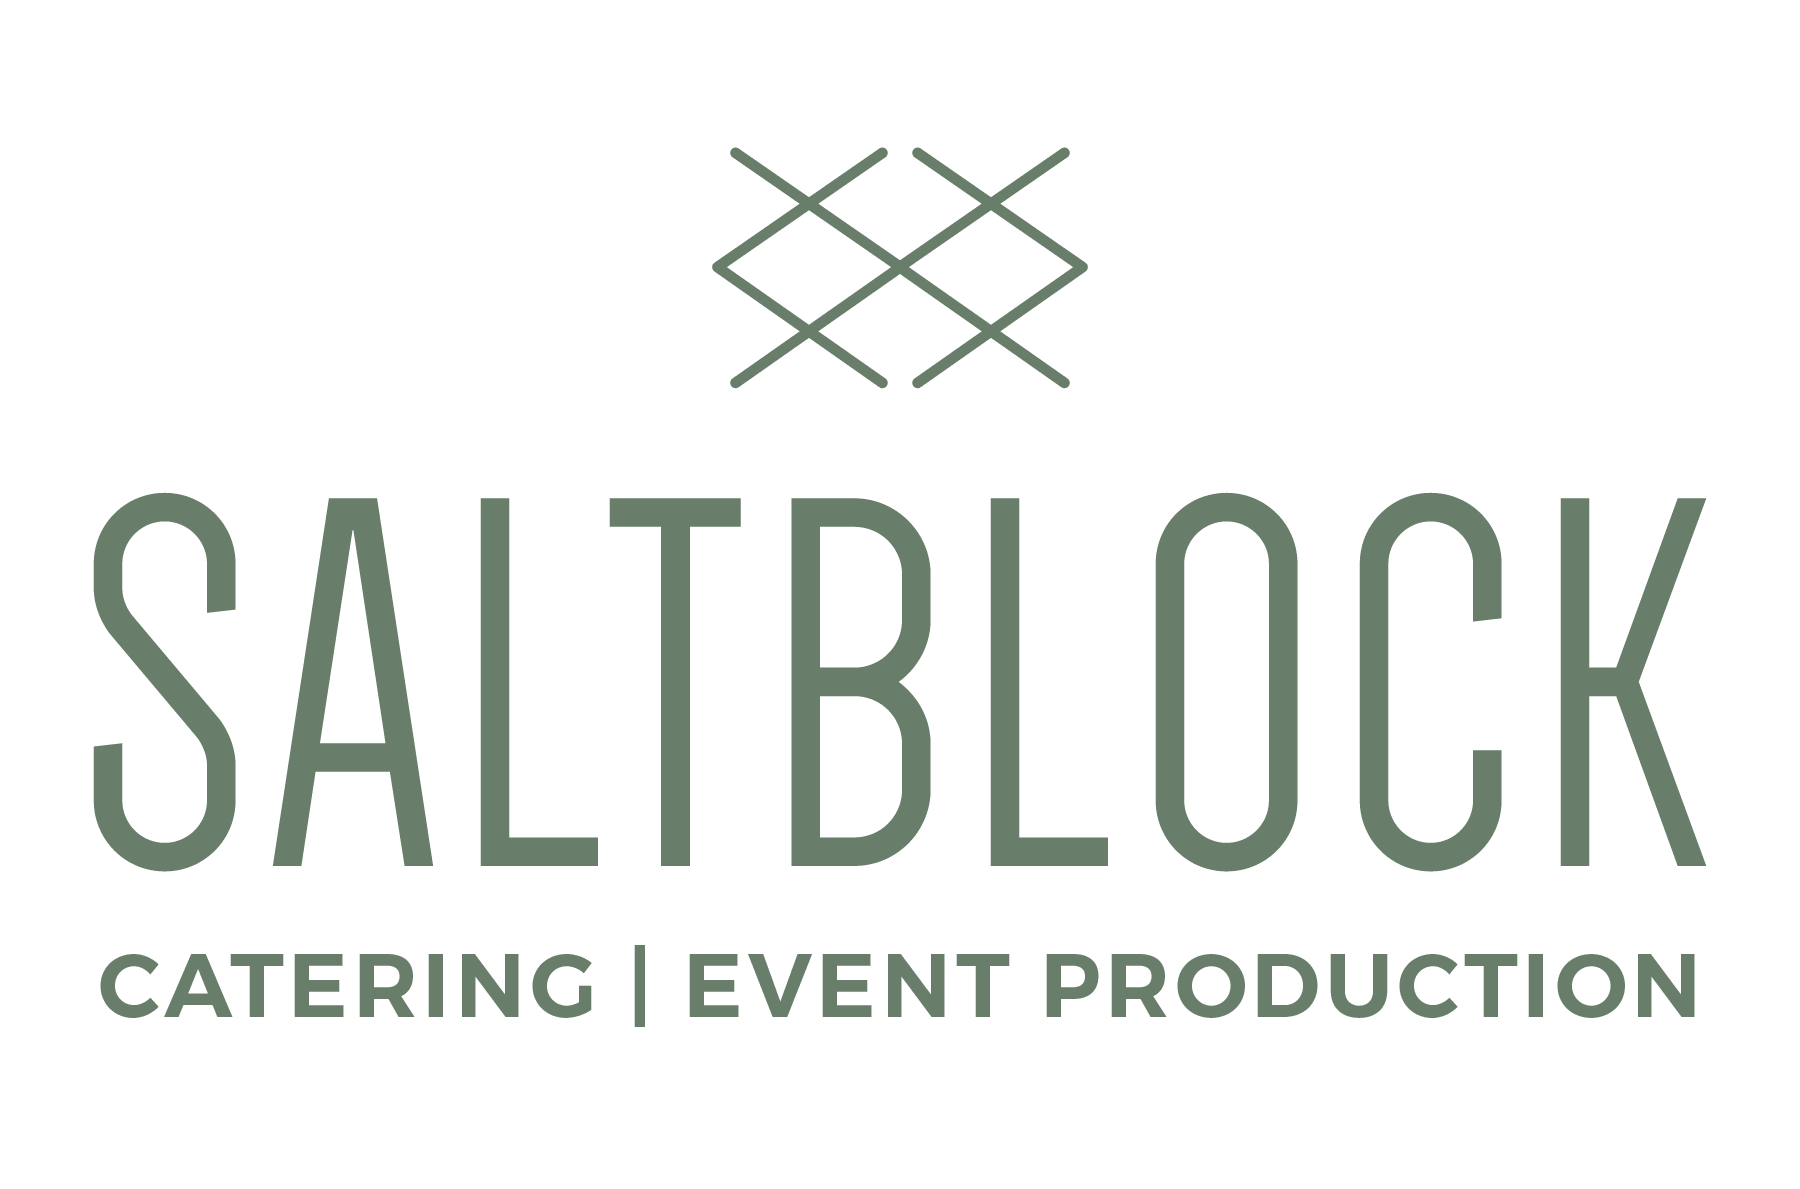 Salt Block Catering